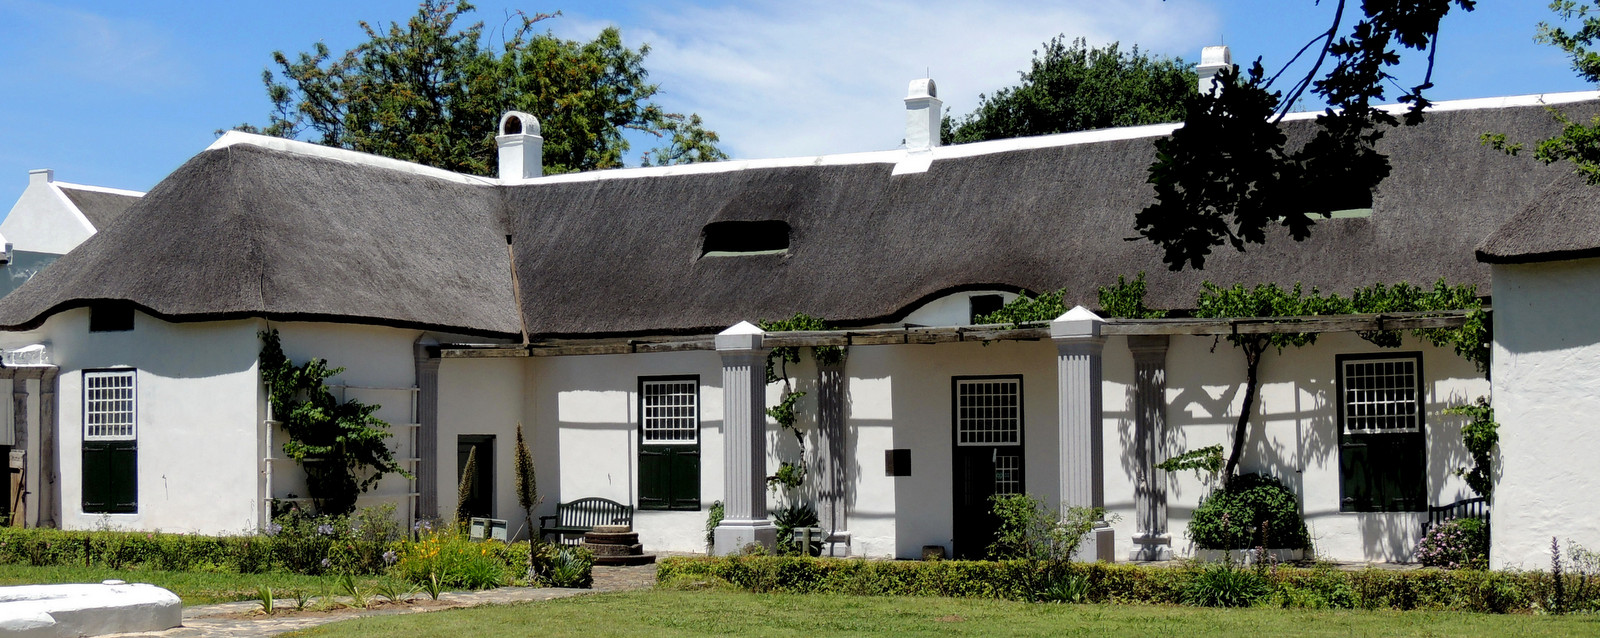 Vogtei in Swellendam